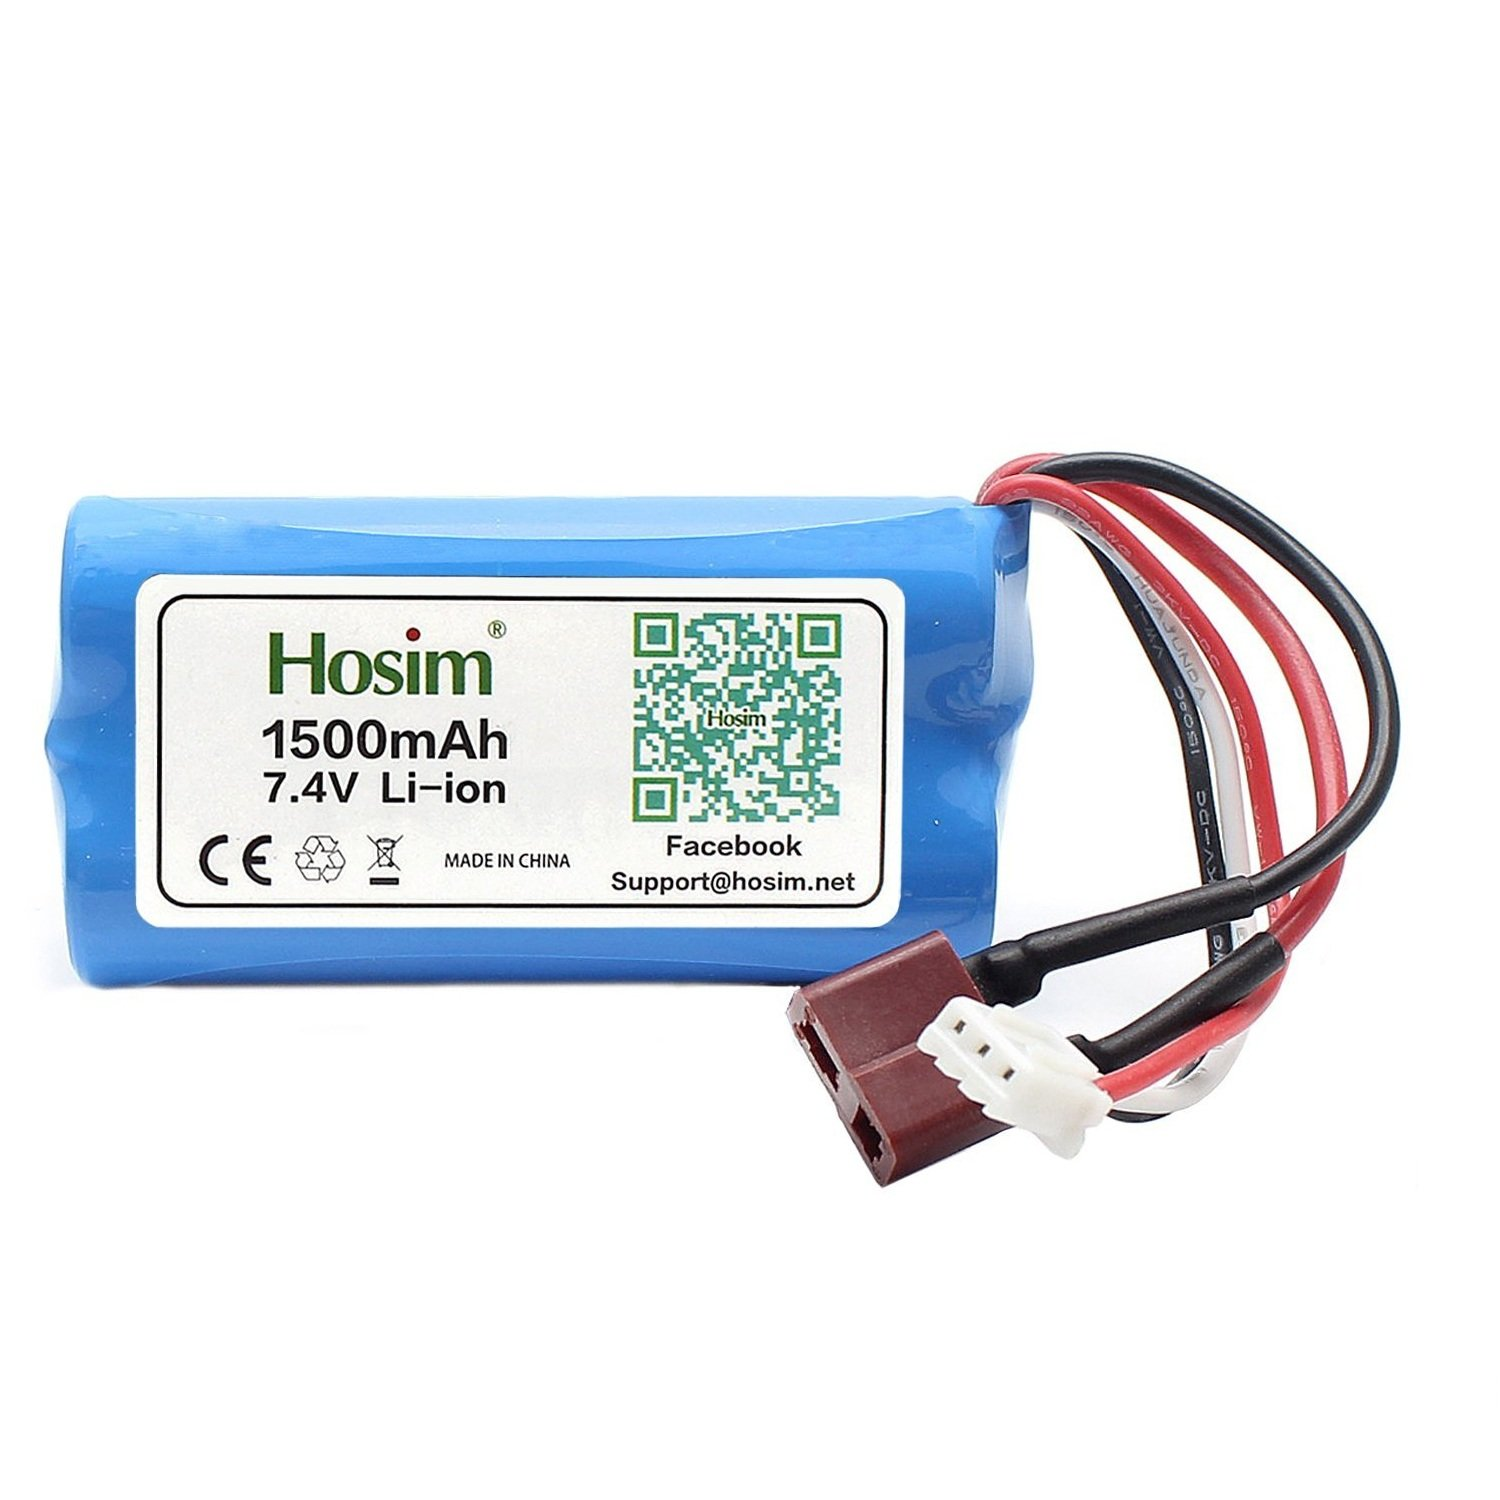 Hosim 74v 1500mah 15c Lithium Ion Rechargeable 18650 Battery Pack 2s Li E Controlled With T Connector For Rc Evader Bx Car Truck Truggy Airplane Uav Drone Fpv